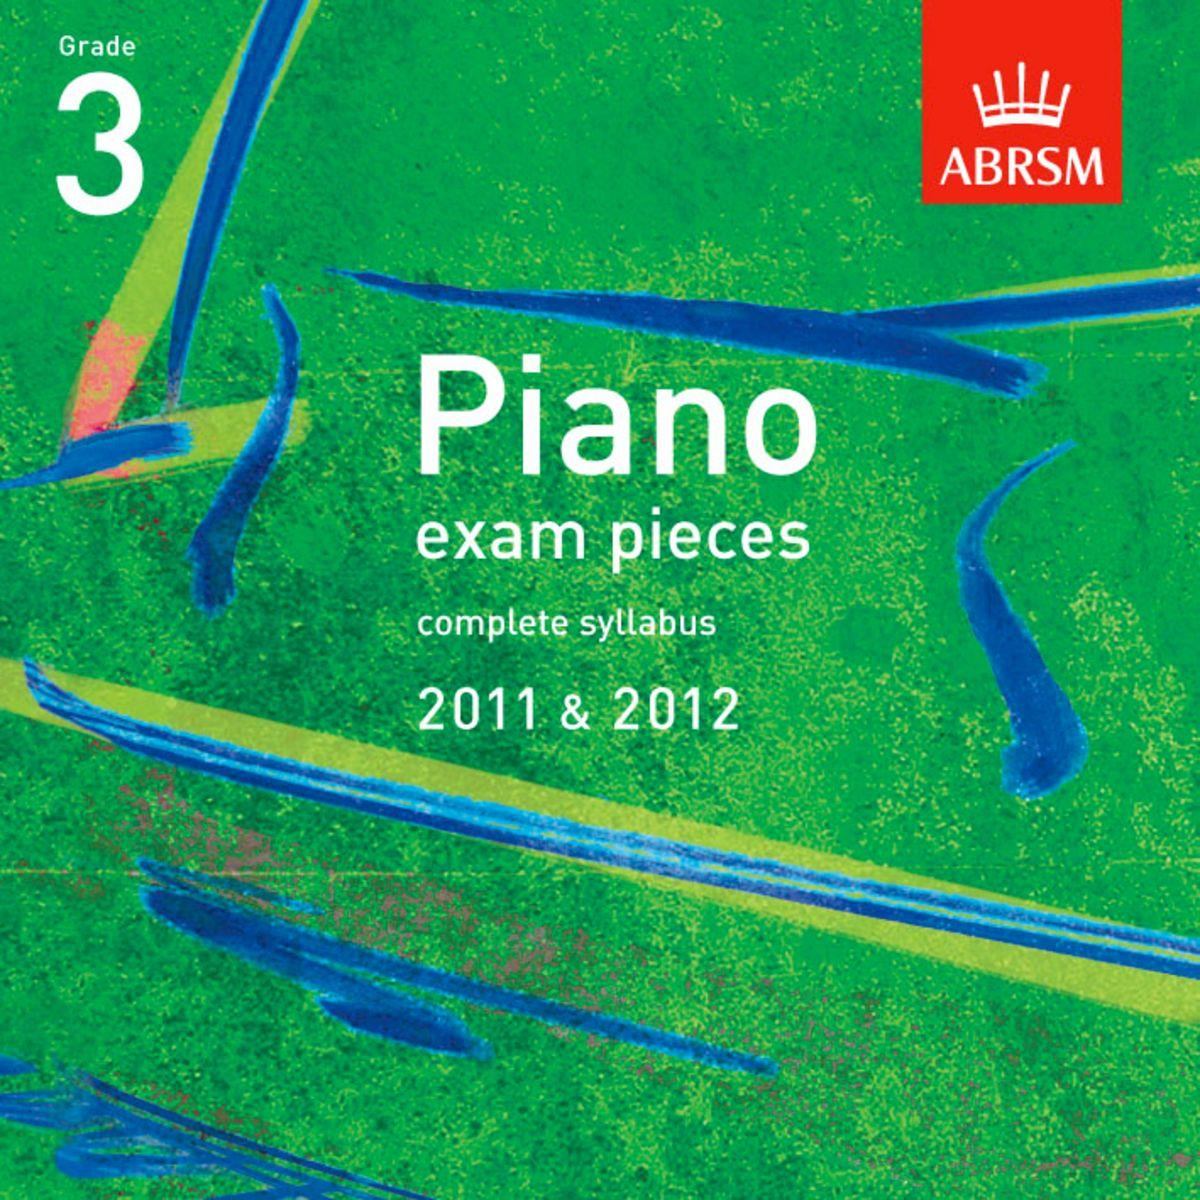 Piano Exam Pieces Grade 3 2011-2012 (CD)